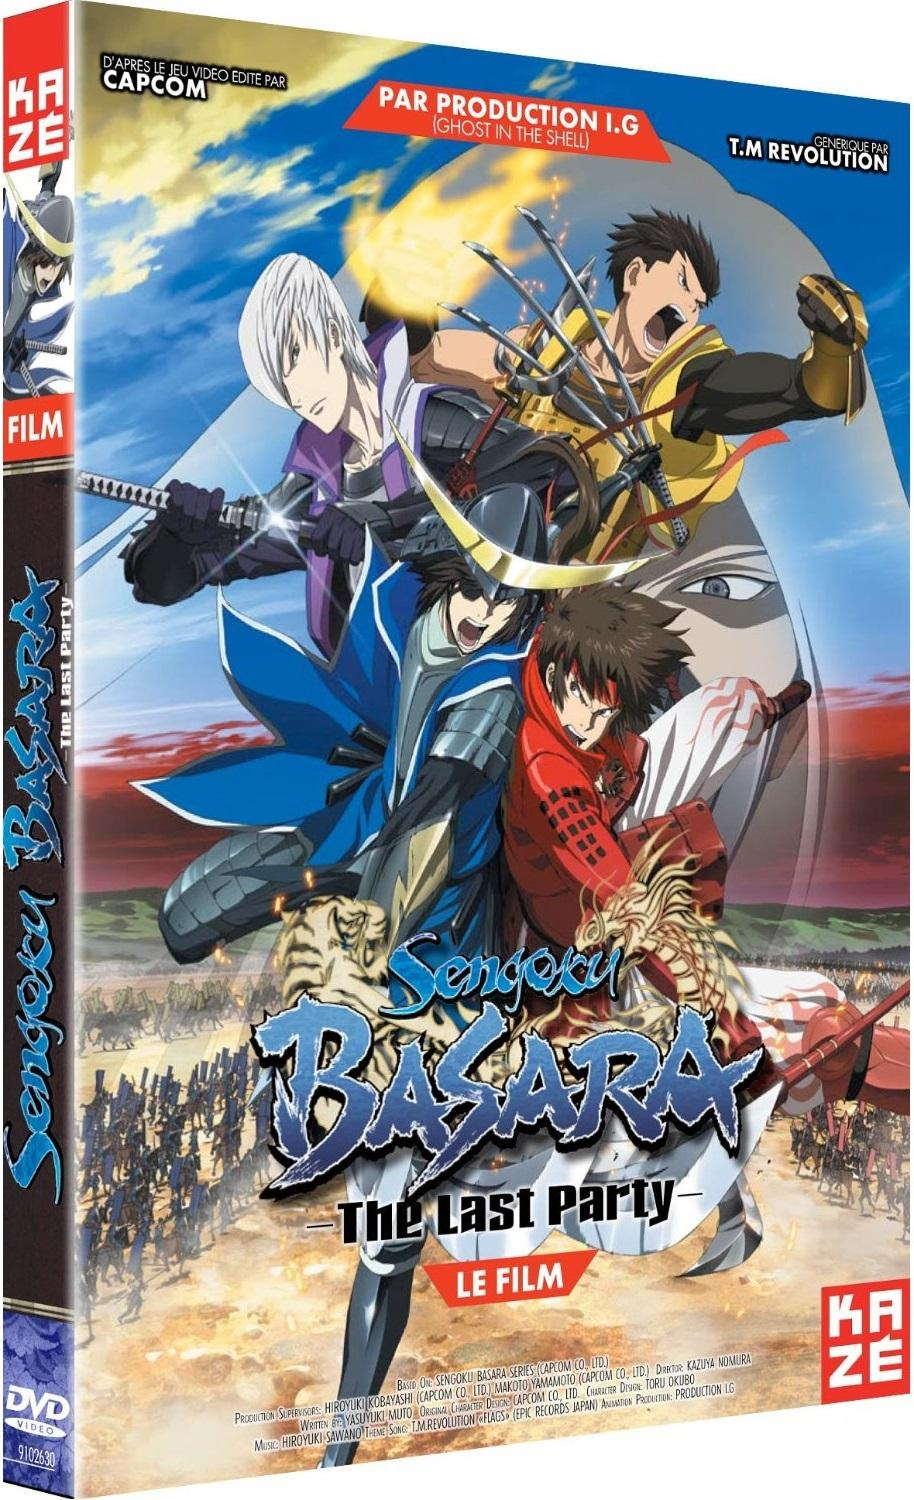 [MULTI] Sengoku Basara - Film - The Last Party |VOSTFR| [HDRip 1080p]